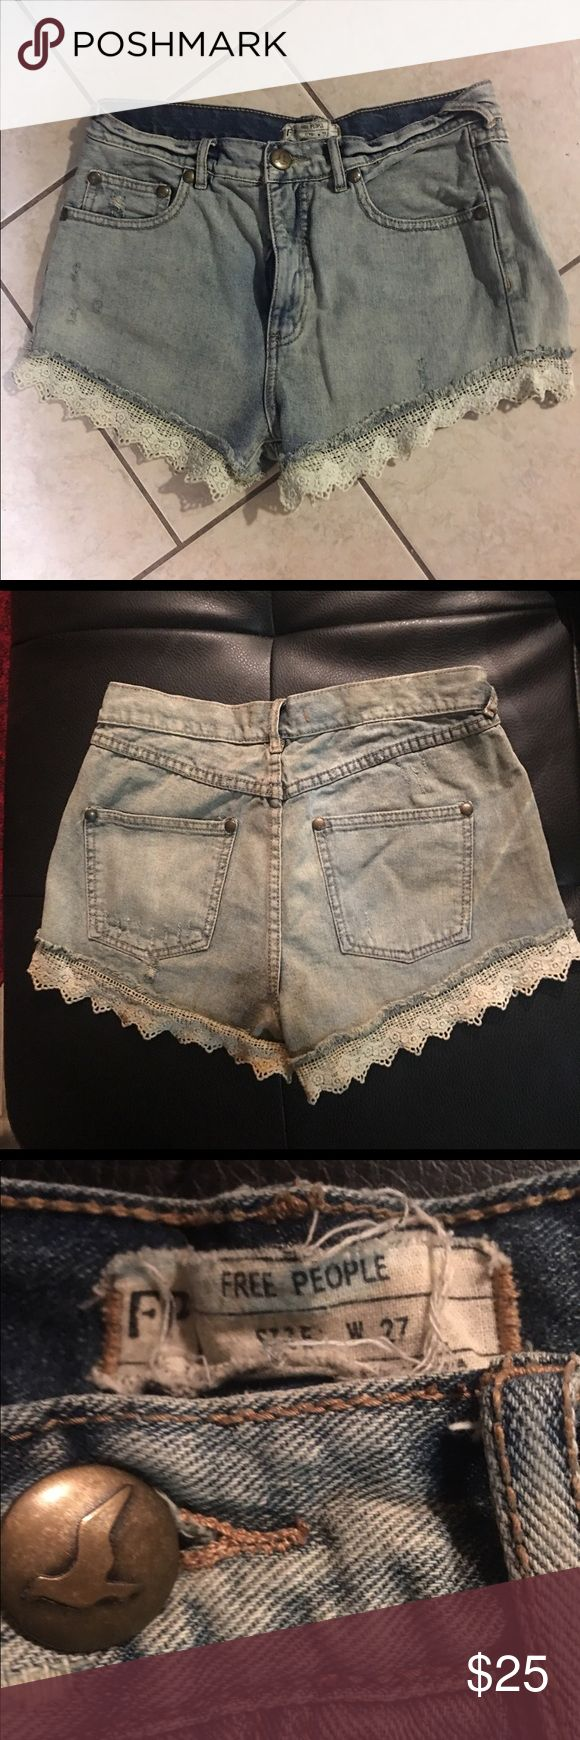 Shorts with lace Hem detail Free People Lace Hem Shorts size 27. Free People Shorts Jean Shorts